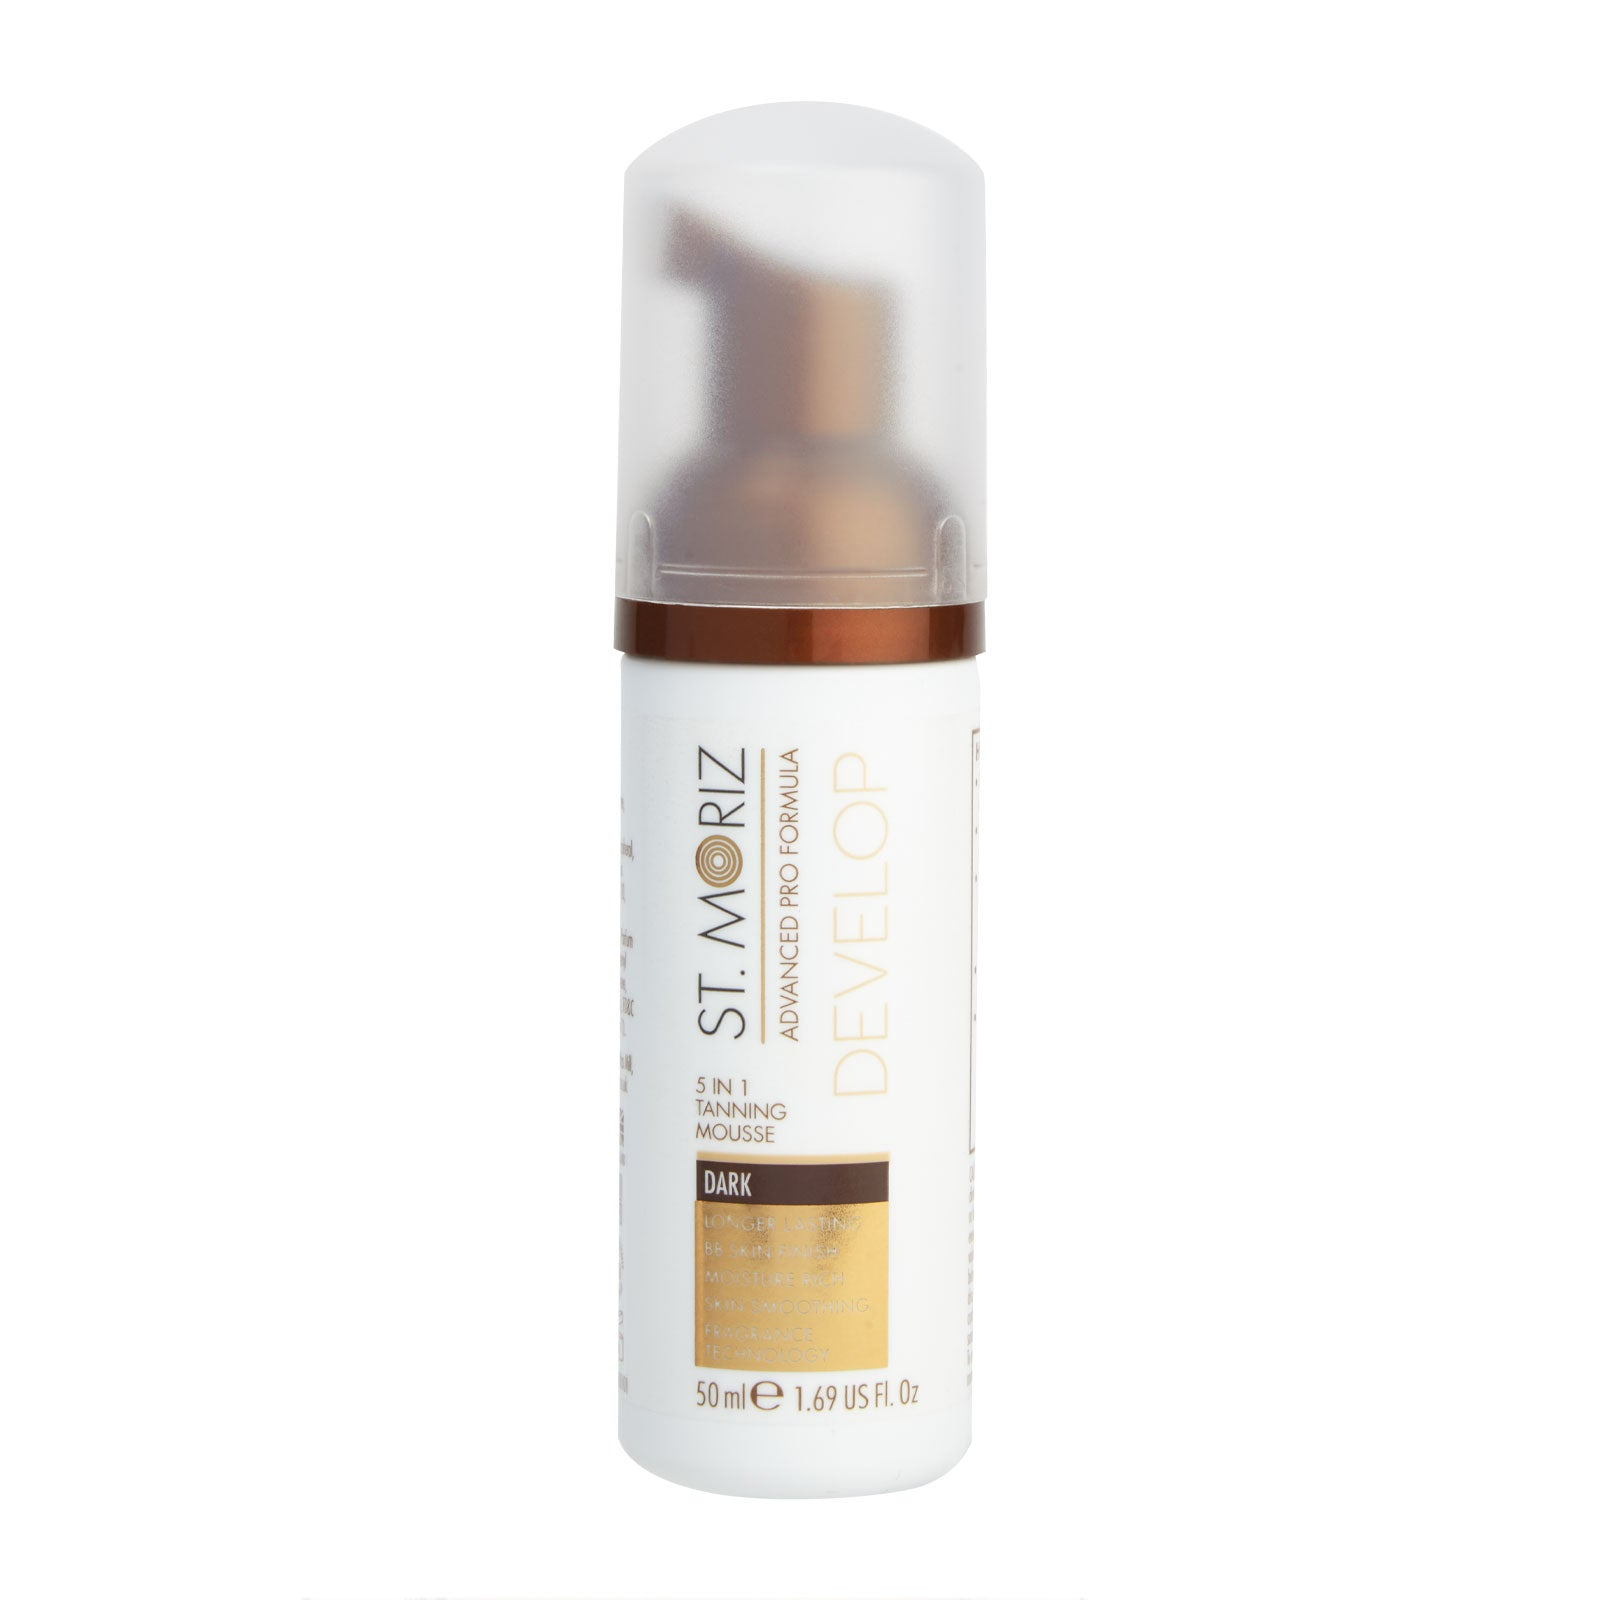 St. Moriz Advanced Pro 5 in 1 Tanning Mousse Dark Travel Size 50ml